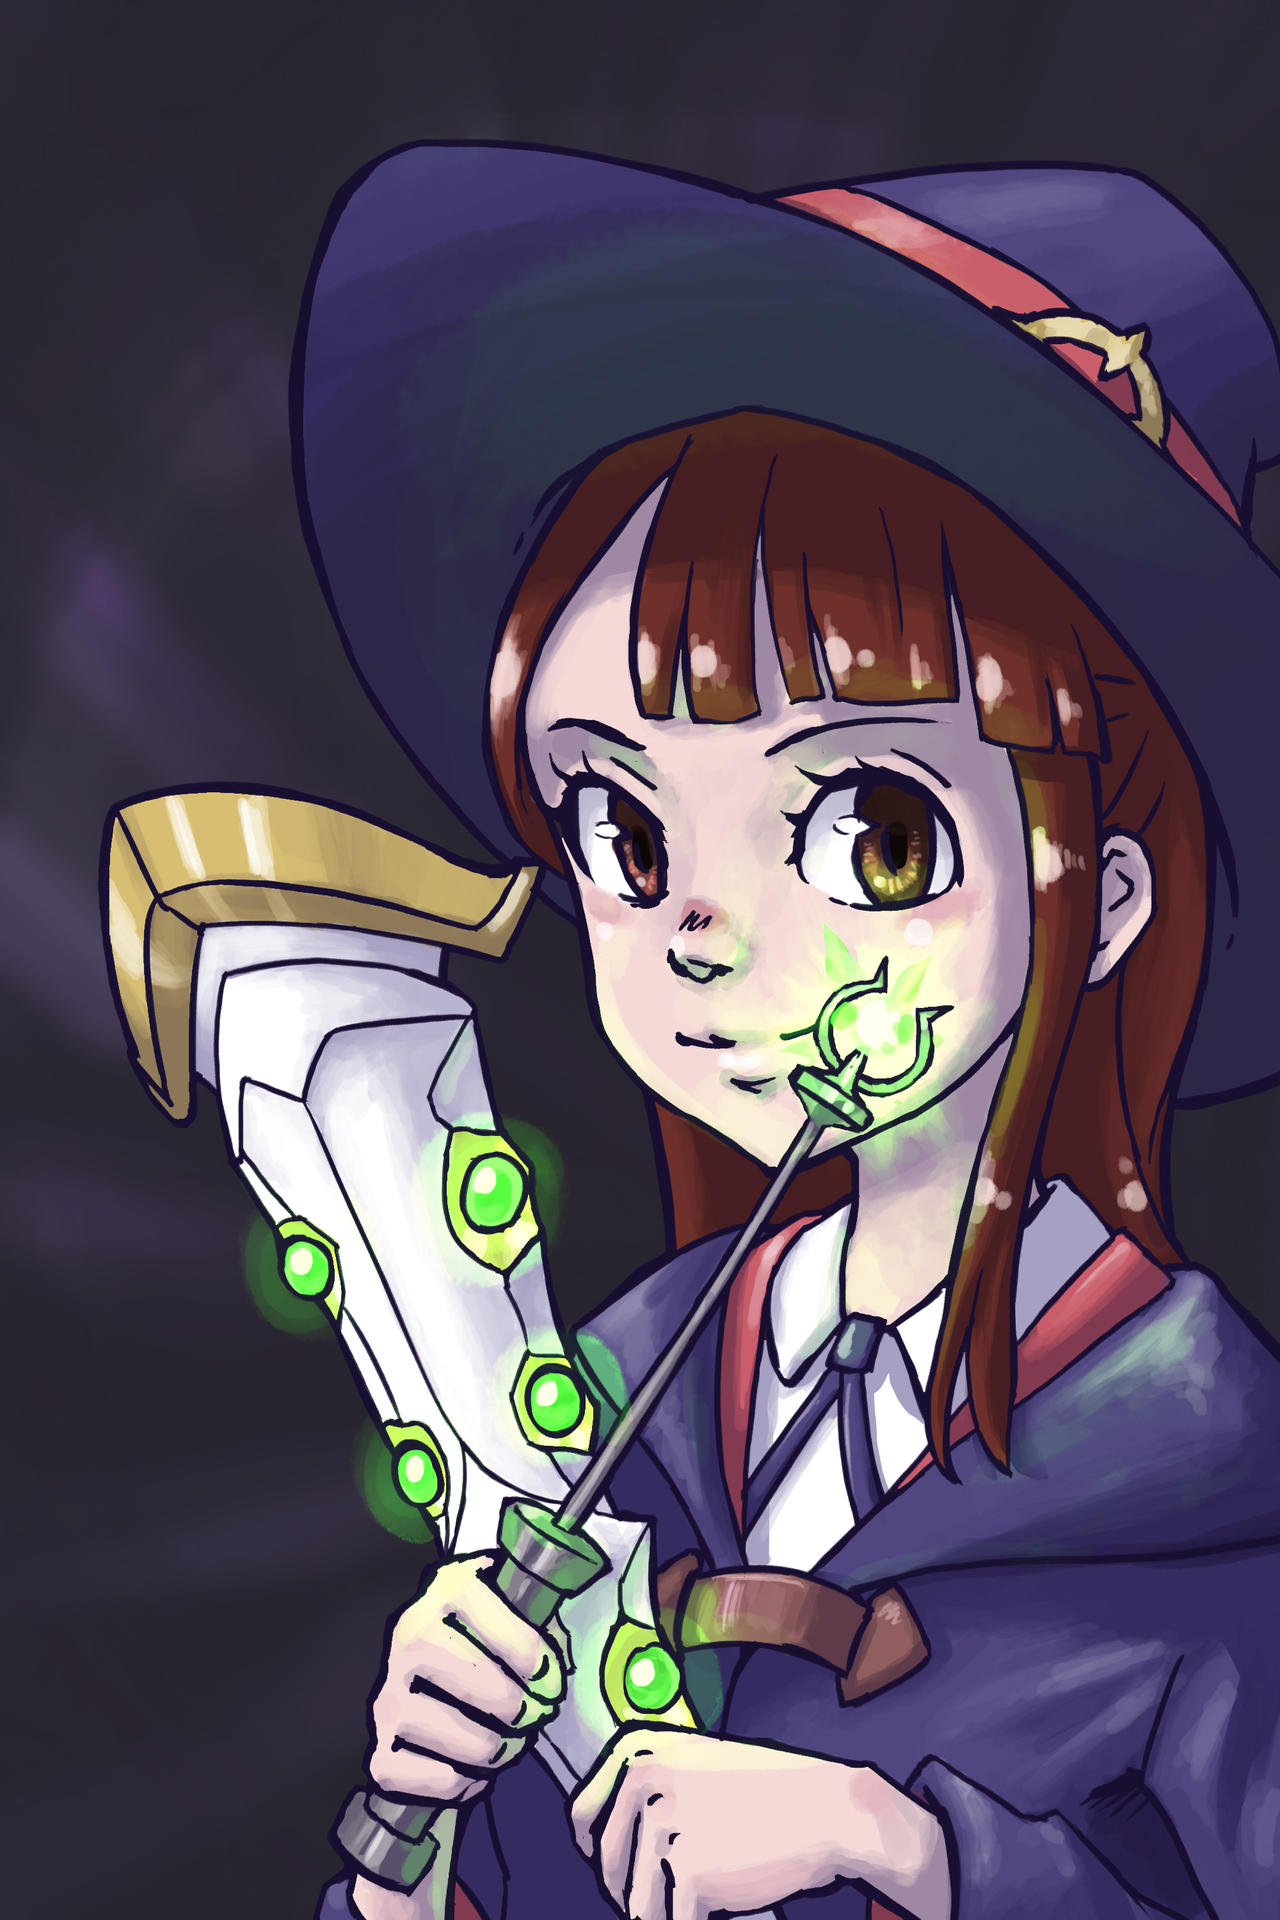 Little Witch Academia - Akko Kagari Fanart by NaiBuff